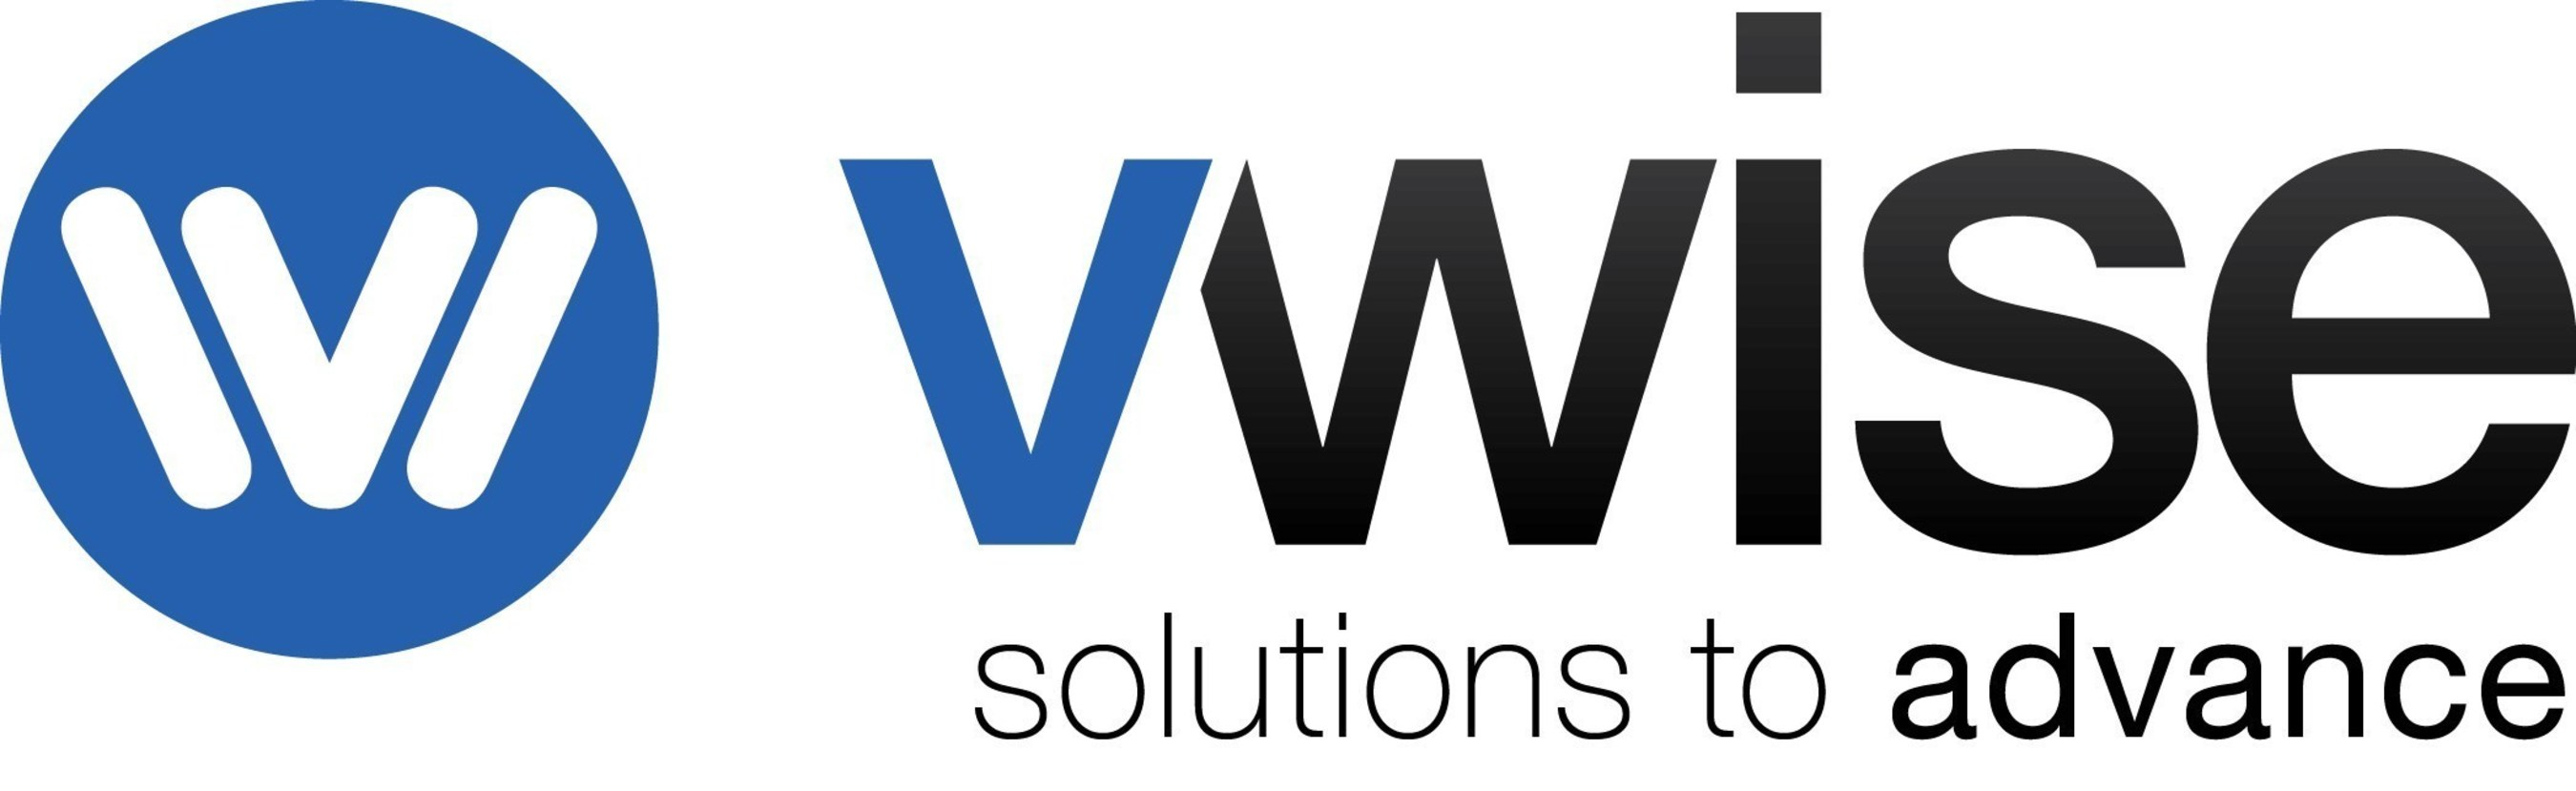 vWise Launches SmartConnect to Easily Collect Employees' Email Addresses